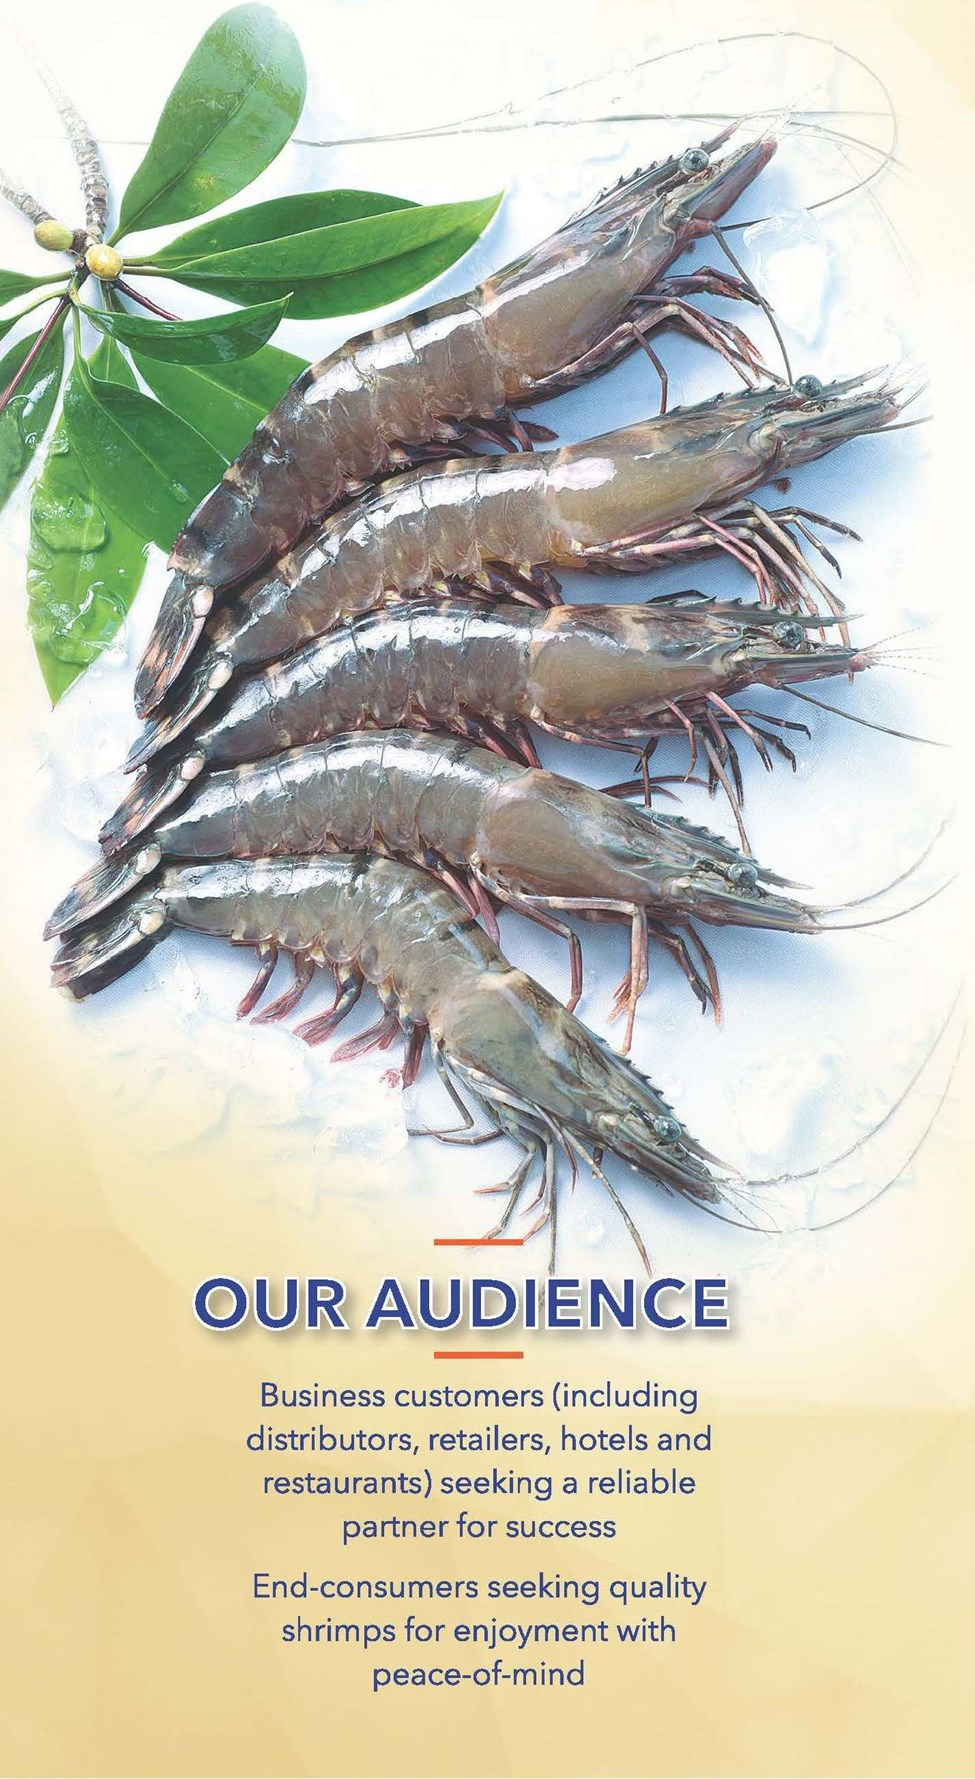 Our Audience Minh Phu Eden Shrimps